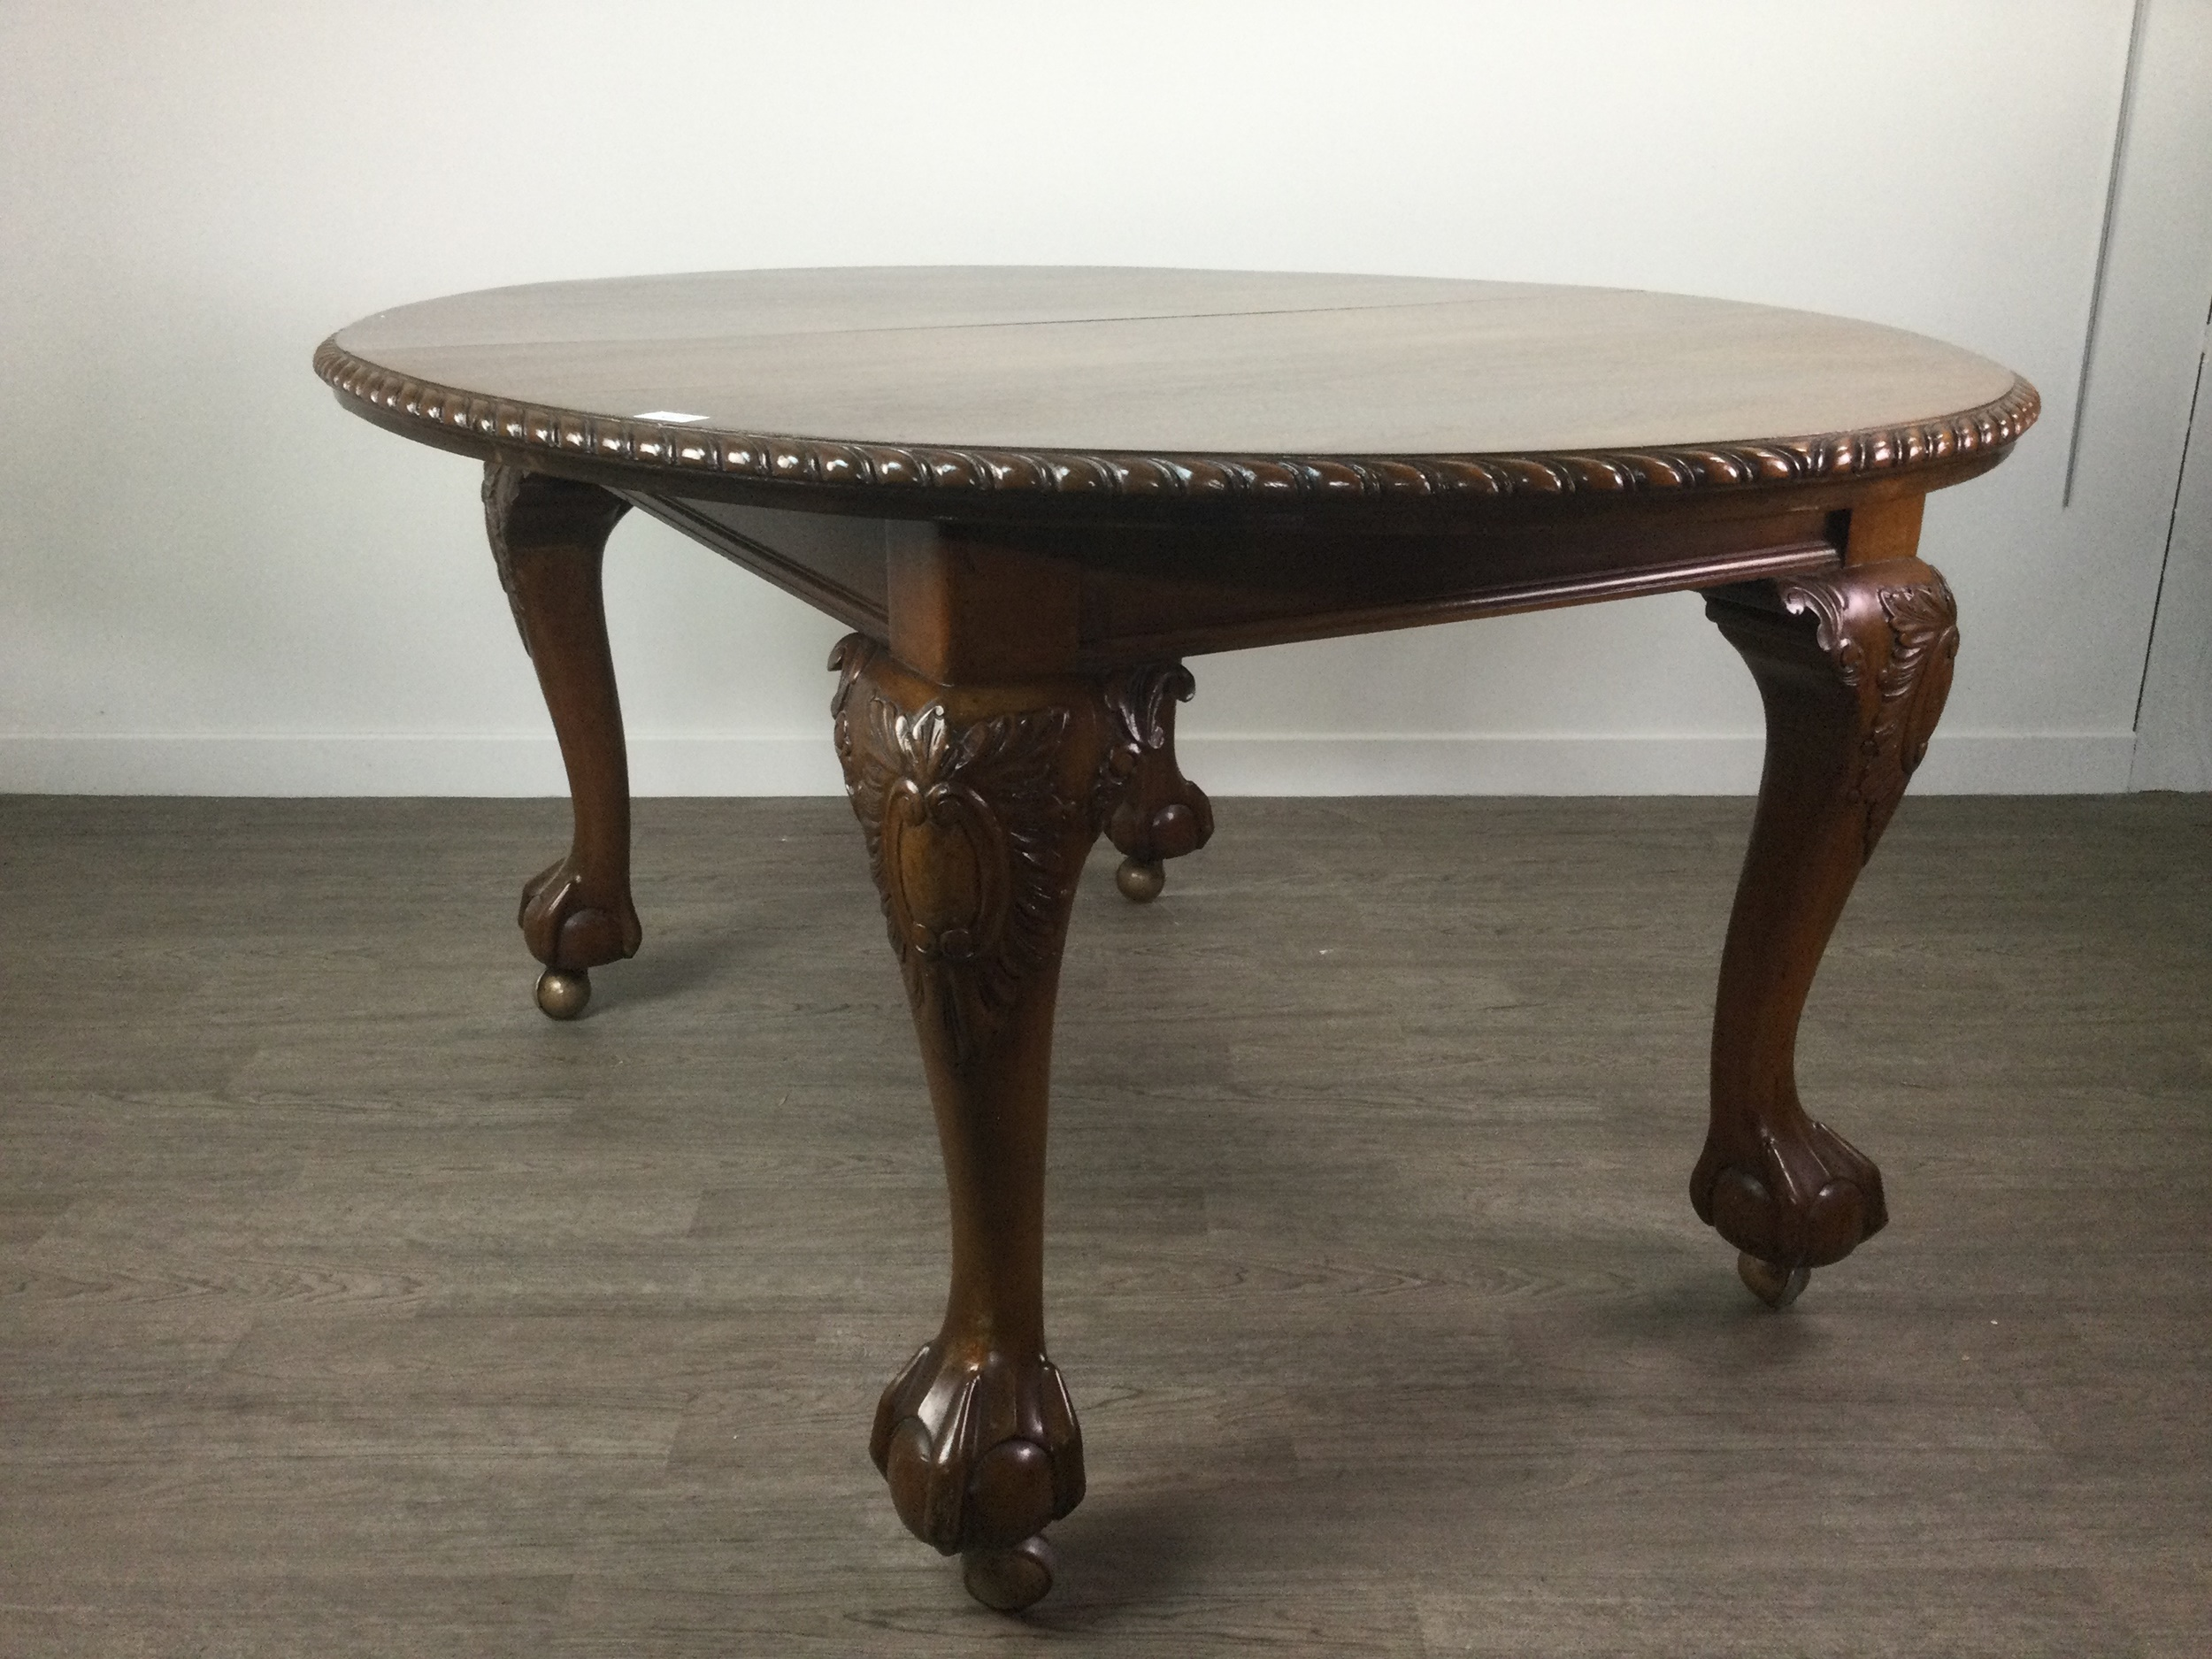 A MAHOGANY DINING TABLE OF CHIPPENDALE DESIGN